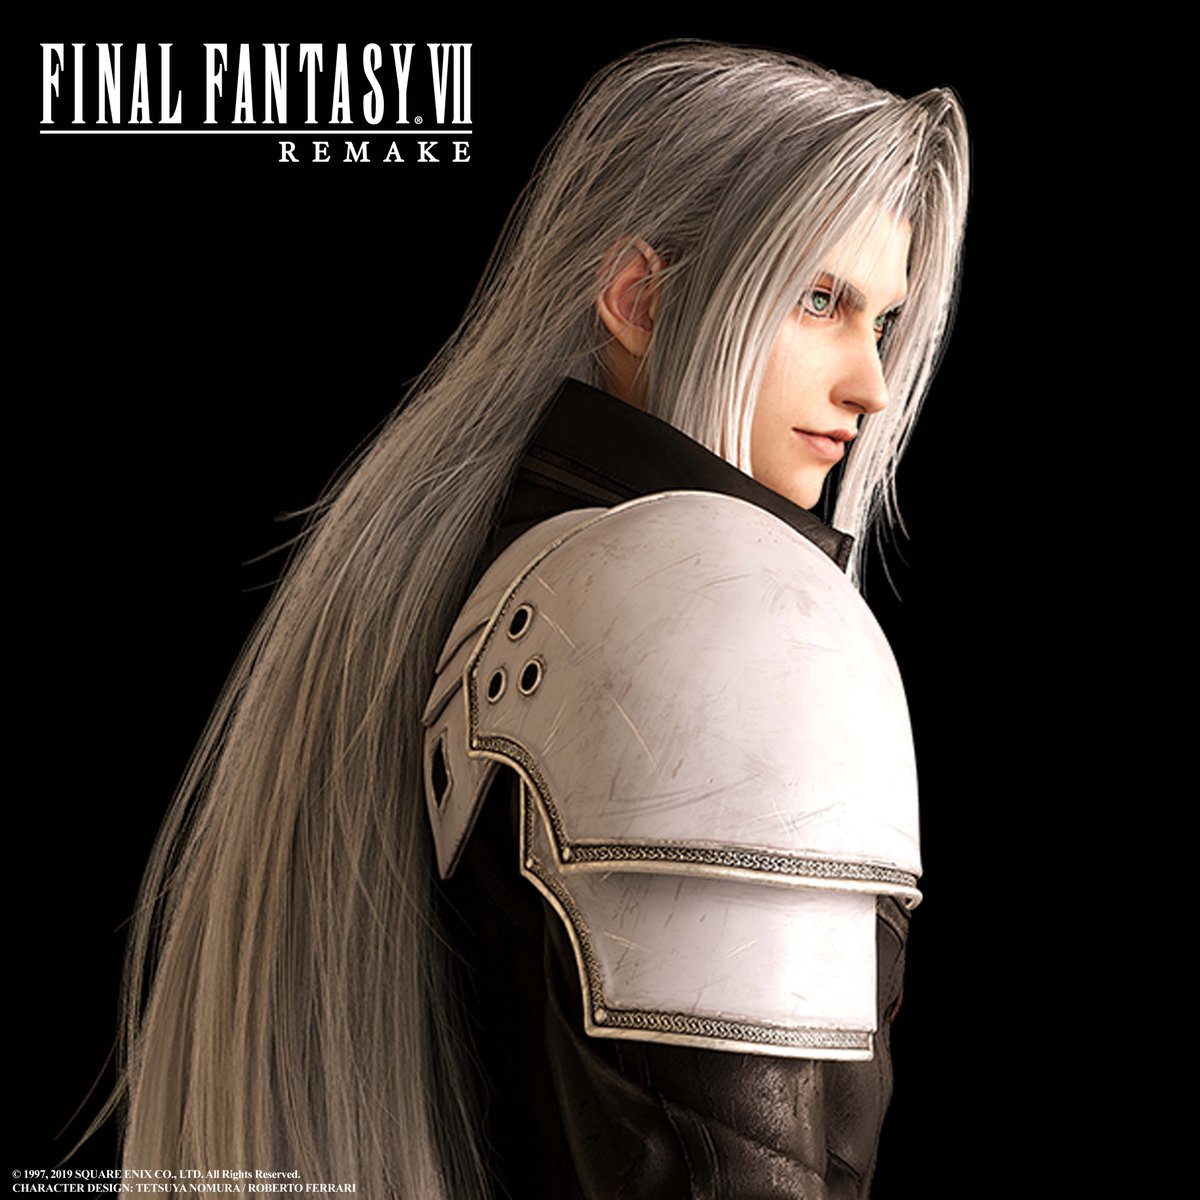 Final Fantasy Vii Remake On Twitter And Here S A Much Closer Look At The Legendary Sephiroth In Finalfantasy Vii Remake Ff7r